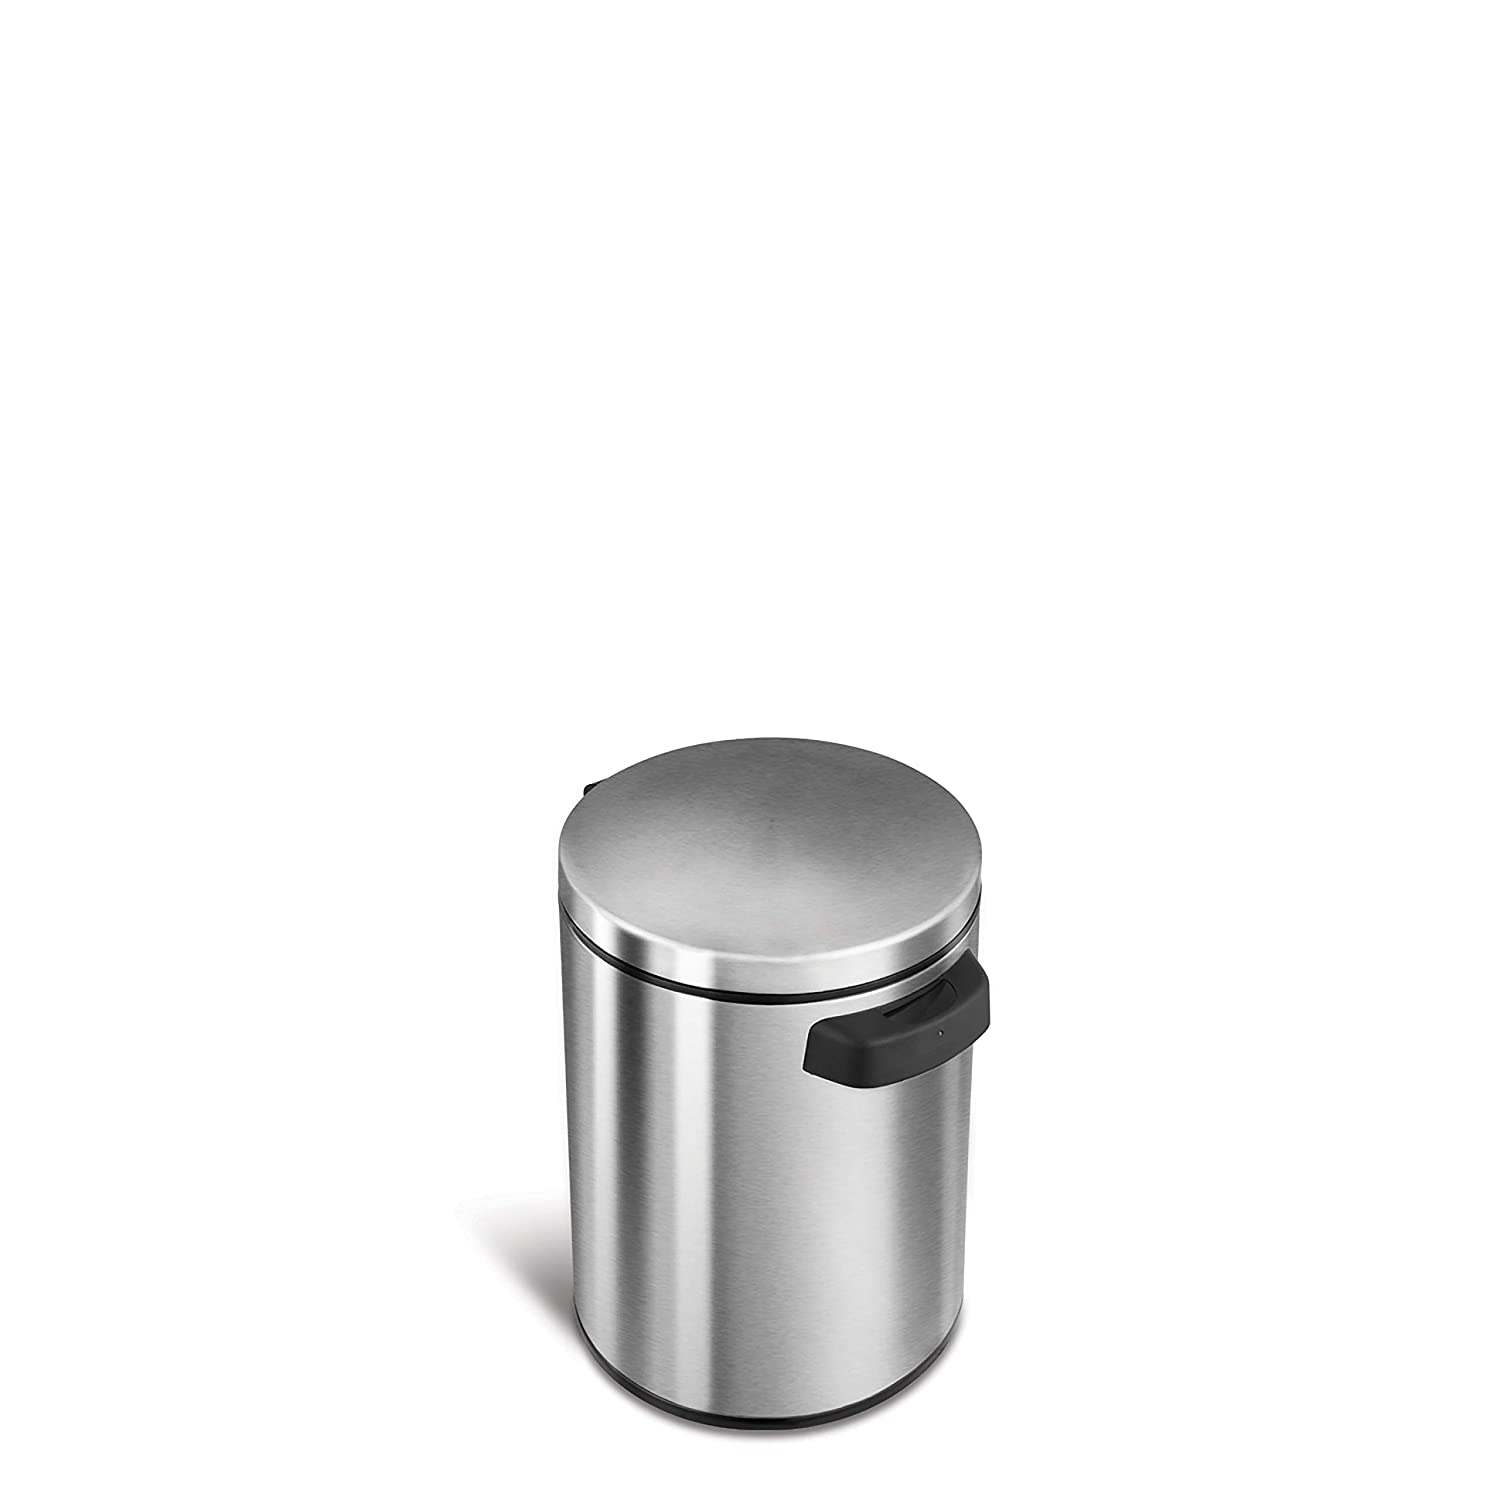 NINESTARS DZT-5-1S Automatic Touchless Infrared Motion Sensor Trash Can, 1.2 Gal 5L, Stainless Steel Base (Round, Stainless Steel Lid) Nine Stars